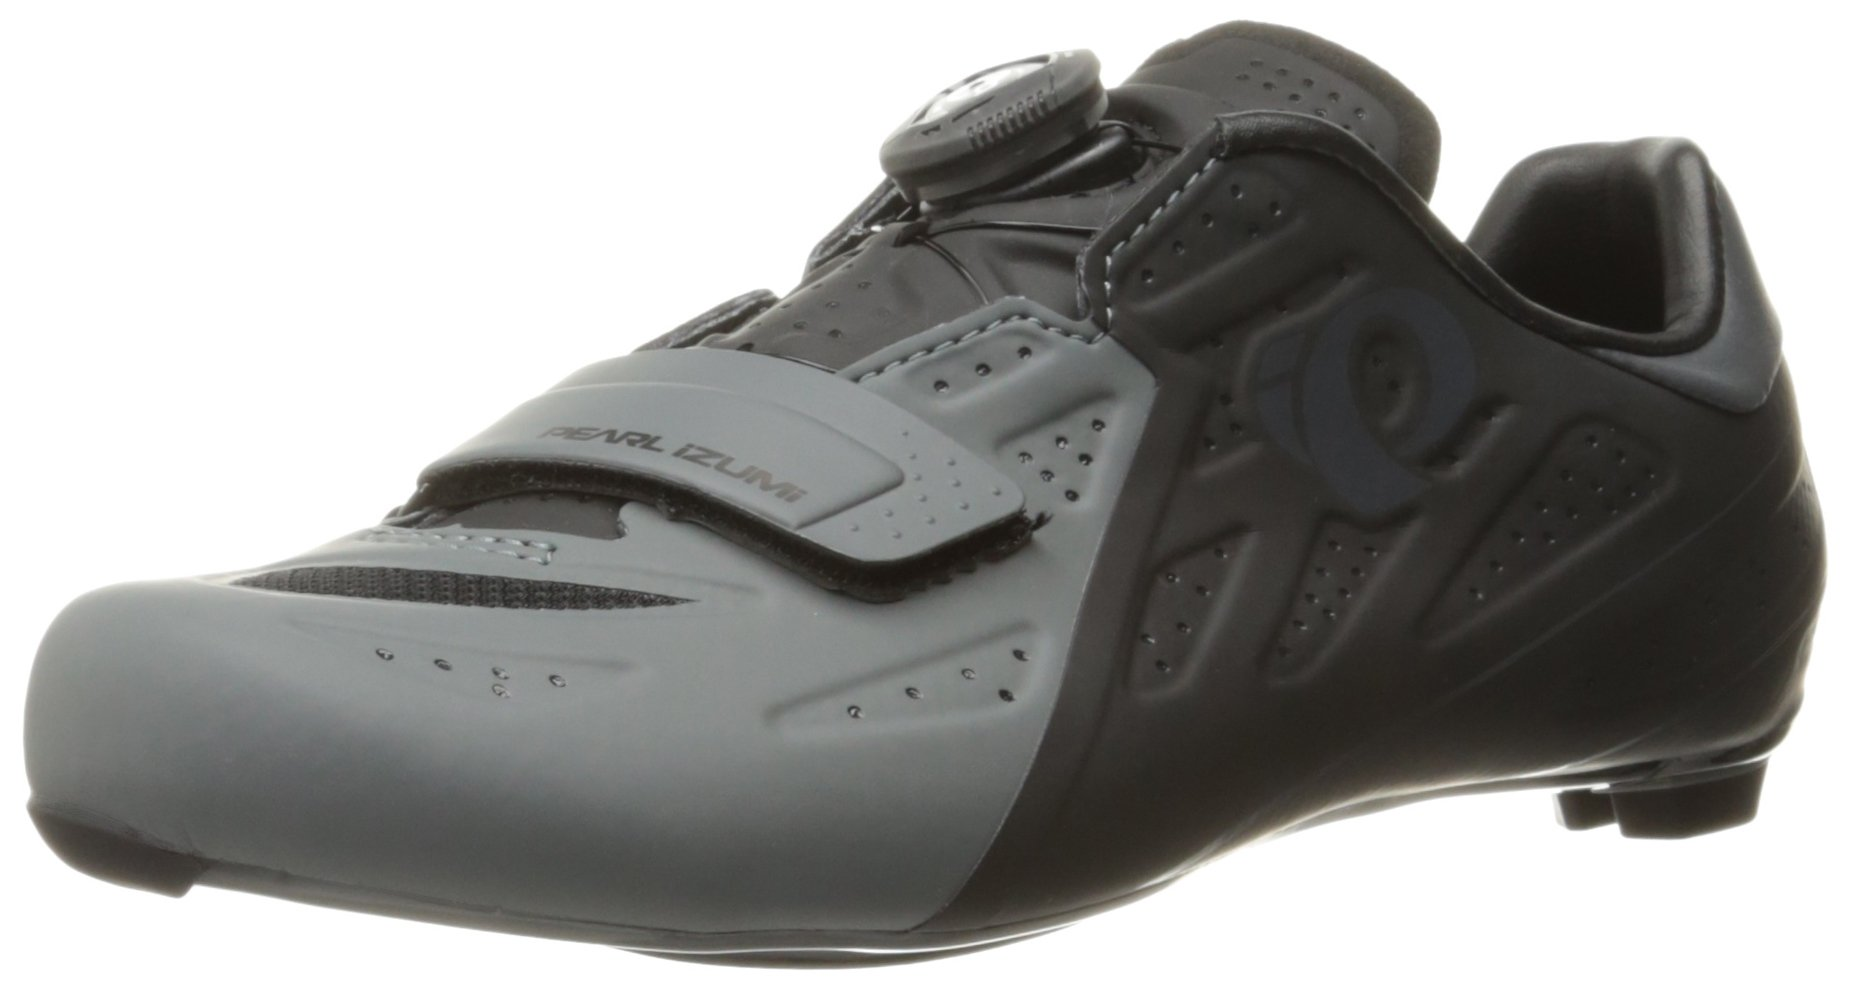 Pearl iZUMi Men's Elite Road V5 Cycling Shoe, Black/Shadow Grey, 40 EU/6.9 D US by Pearl iZUMi